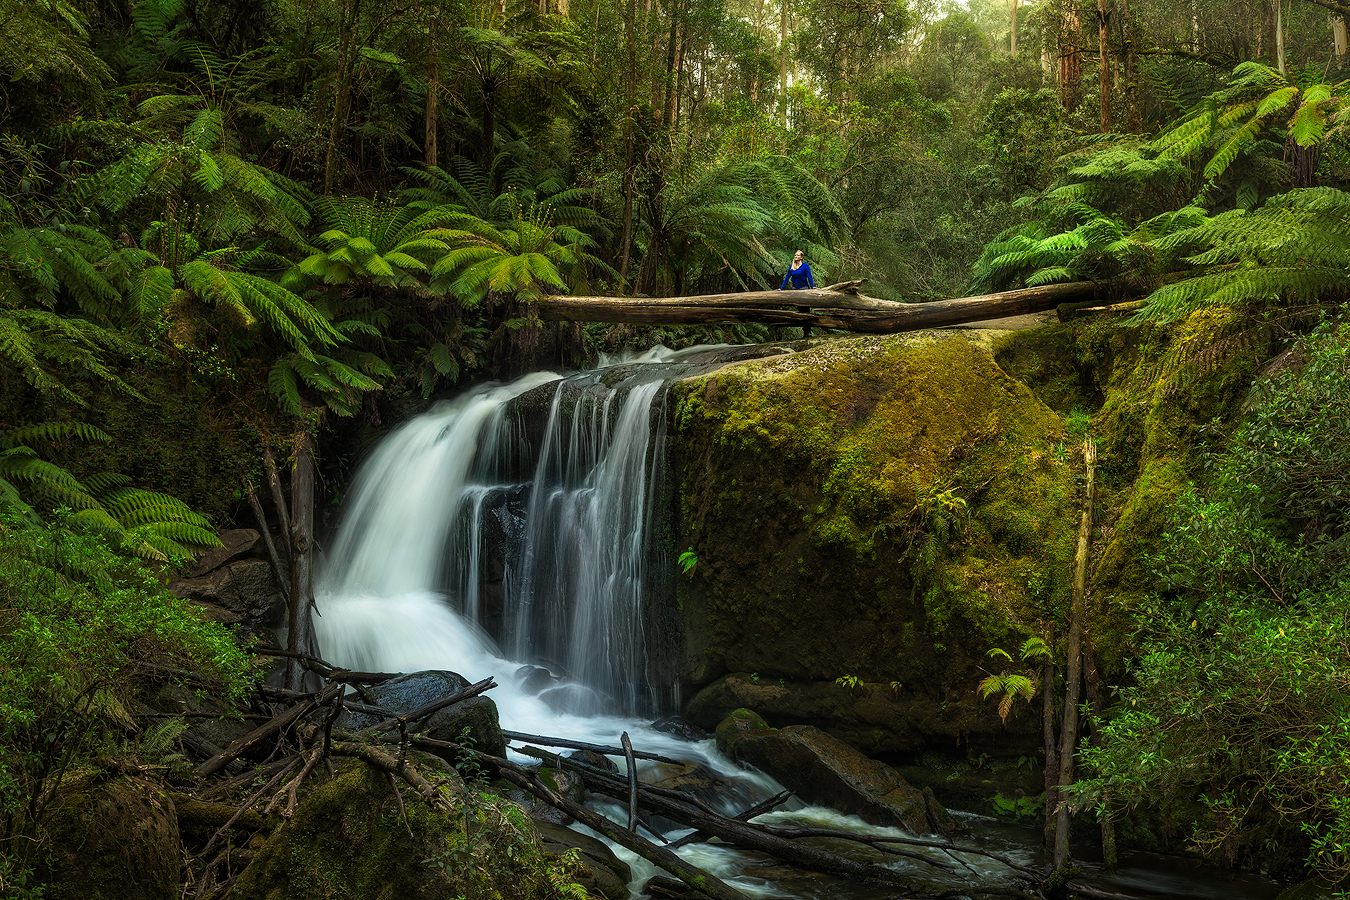 Amphitheatre Falls, Noojee | 1 Day Waterfall Photography Workshop | Holiday with We Are Raw Photography Tours